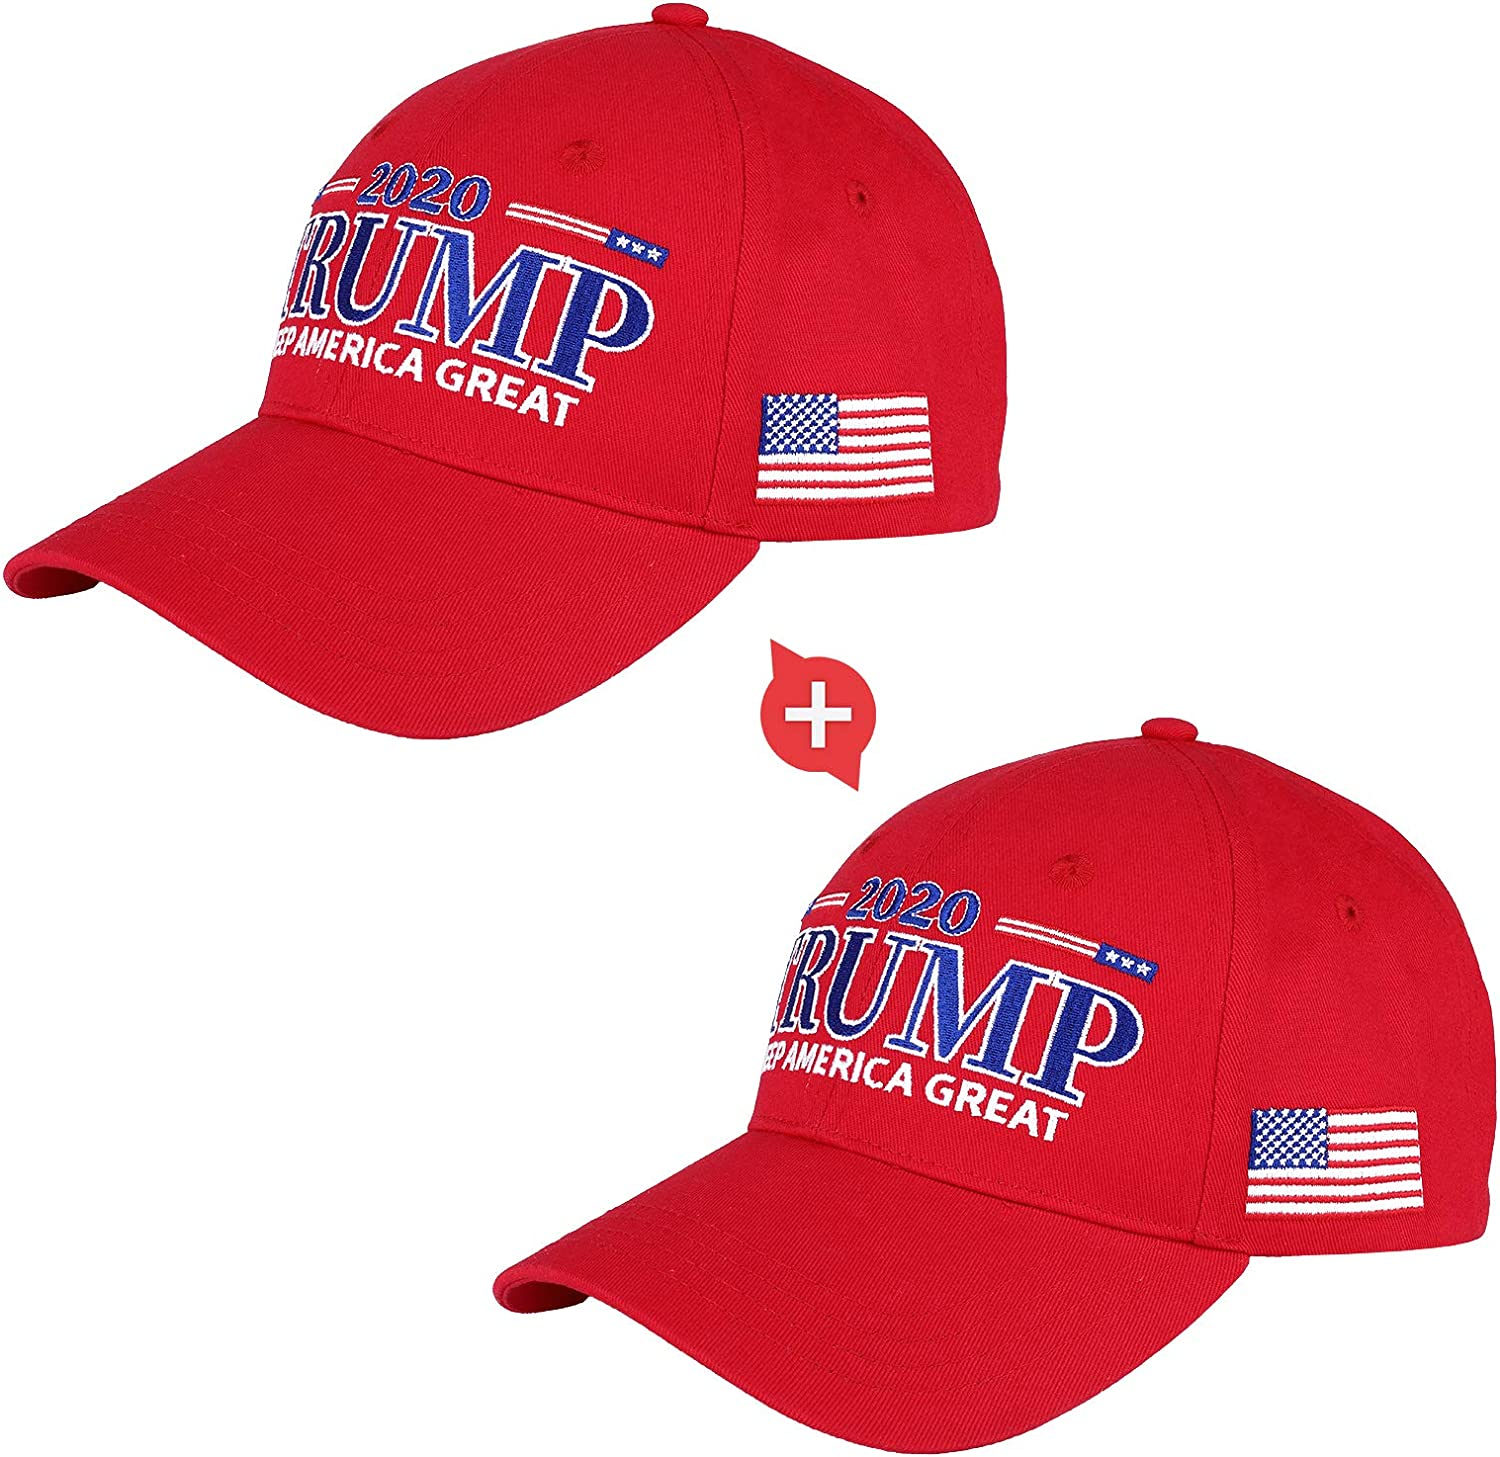 VPCOK Trump 2020 Hat 2 Packs Keep America Great Trump Hats for Men/Wowen, Trump Cap Adjustable Baseball Hat Red and Blue: Clothing